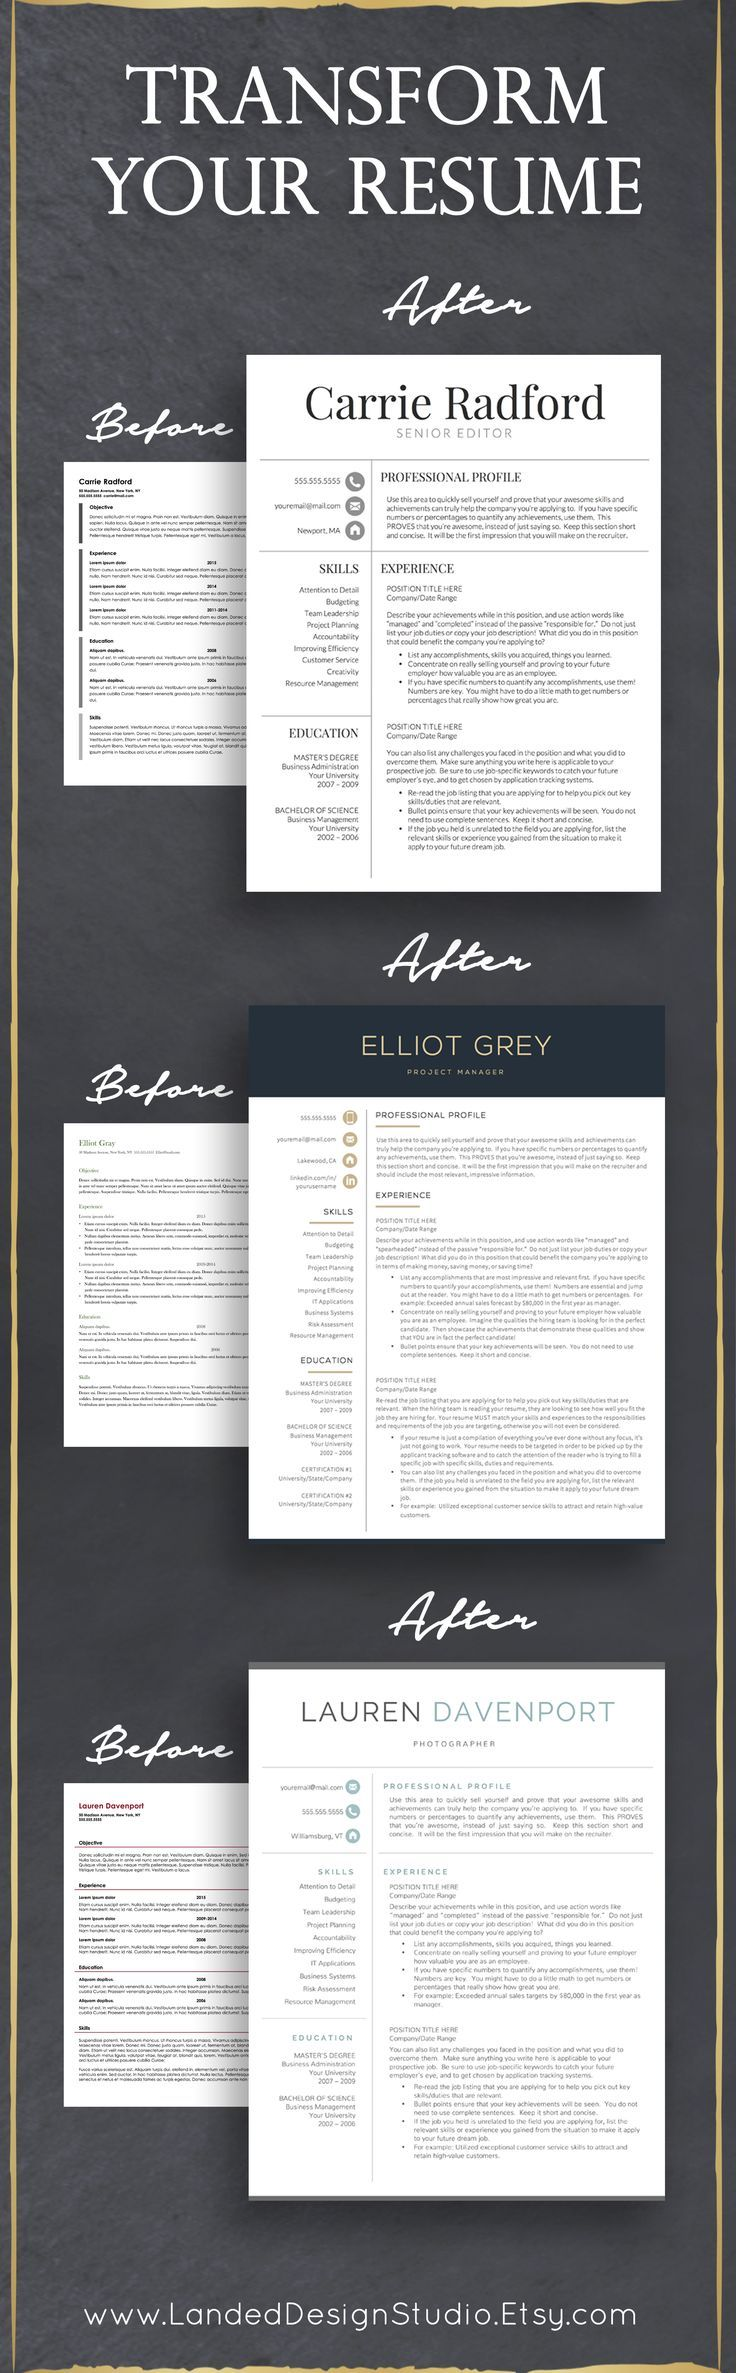 how to properly format your resume infographic via hubspot completely transform your resume a professional resume template resume writing tips and resume advice